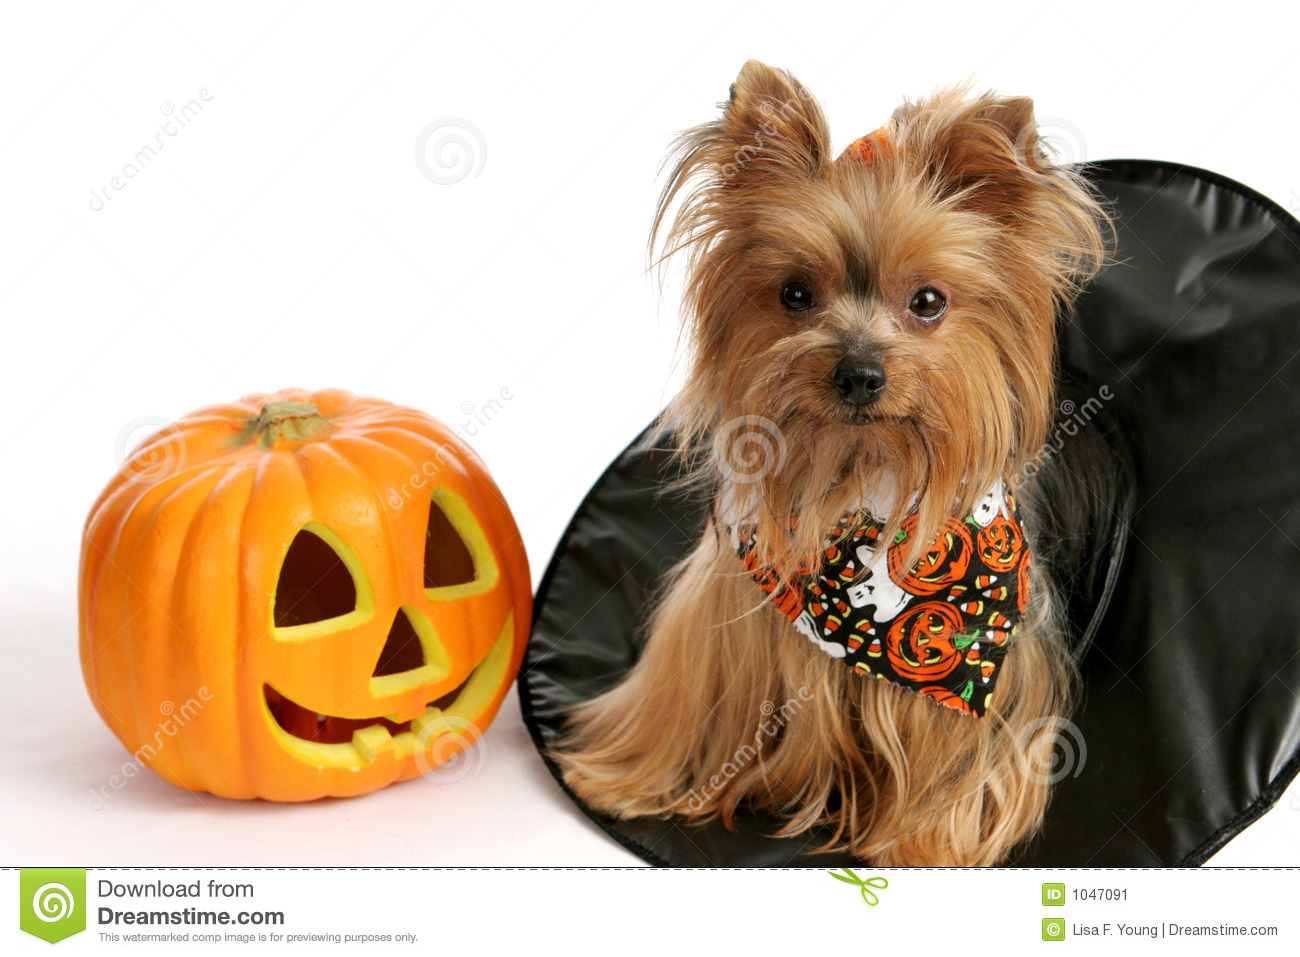 Fall Pumpkin Background Wallpaper Halloween Yorkie In Witch Hat Stock Image Image Of Humor